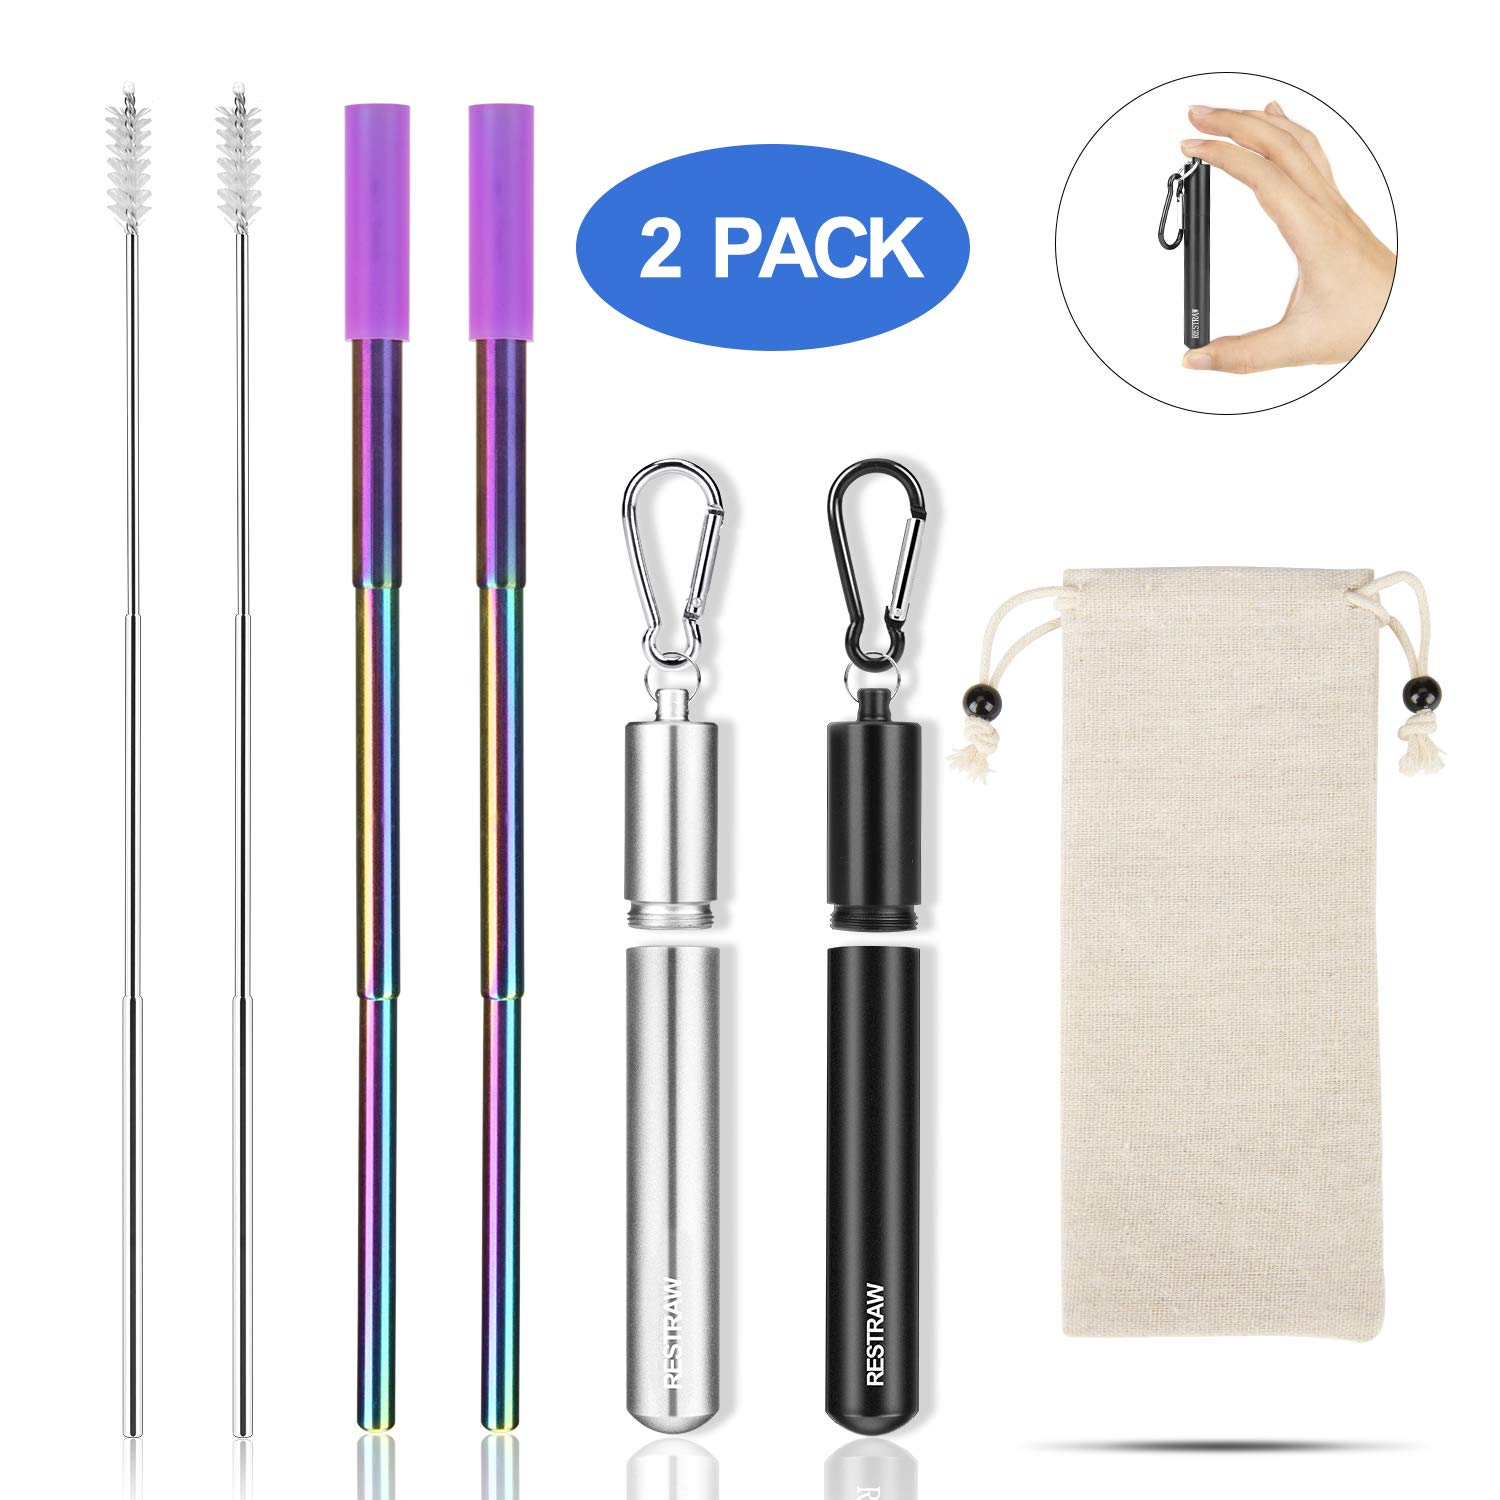 RESTRAW 2 Pack Collapsible Straw Reusable Collapsible Straw keychain metal straw with case,Rainbow Stainless Steel Straws,save the turtles straw foldable straw portable straw,BPA Free FDA Approved